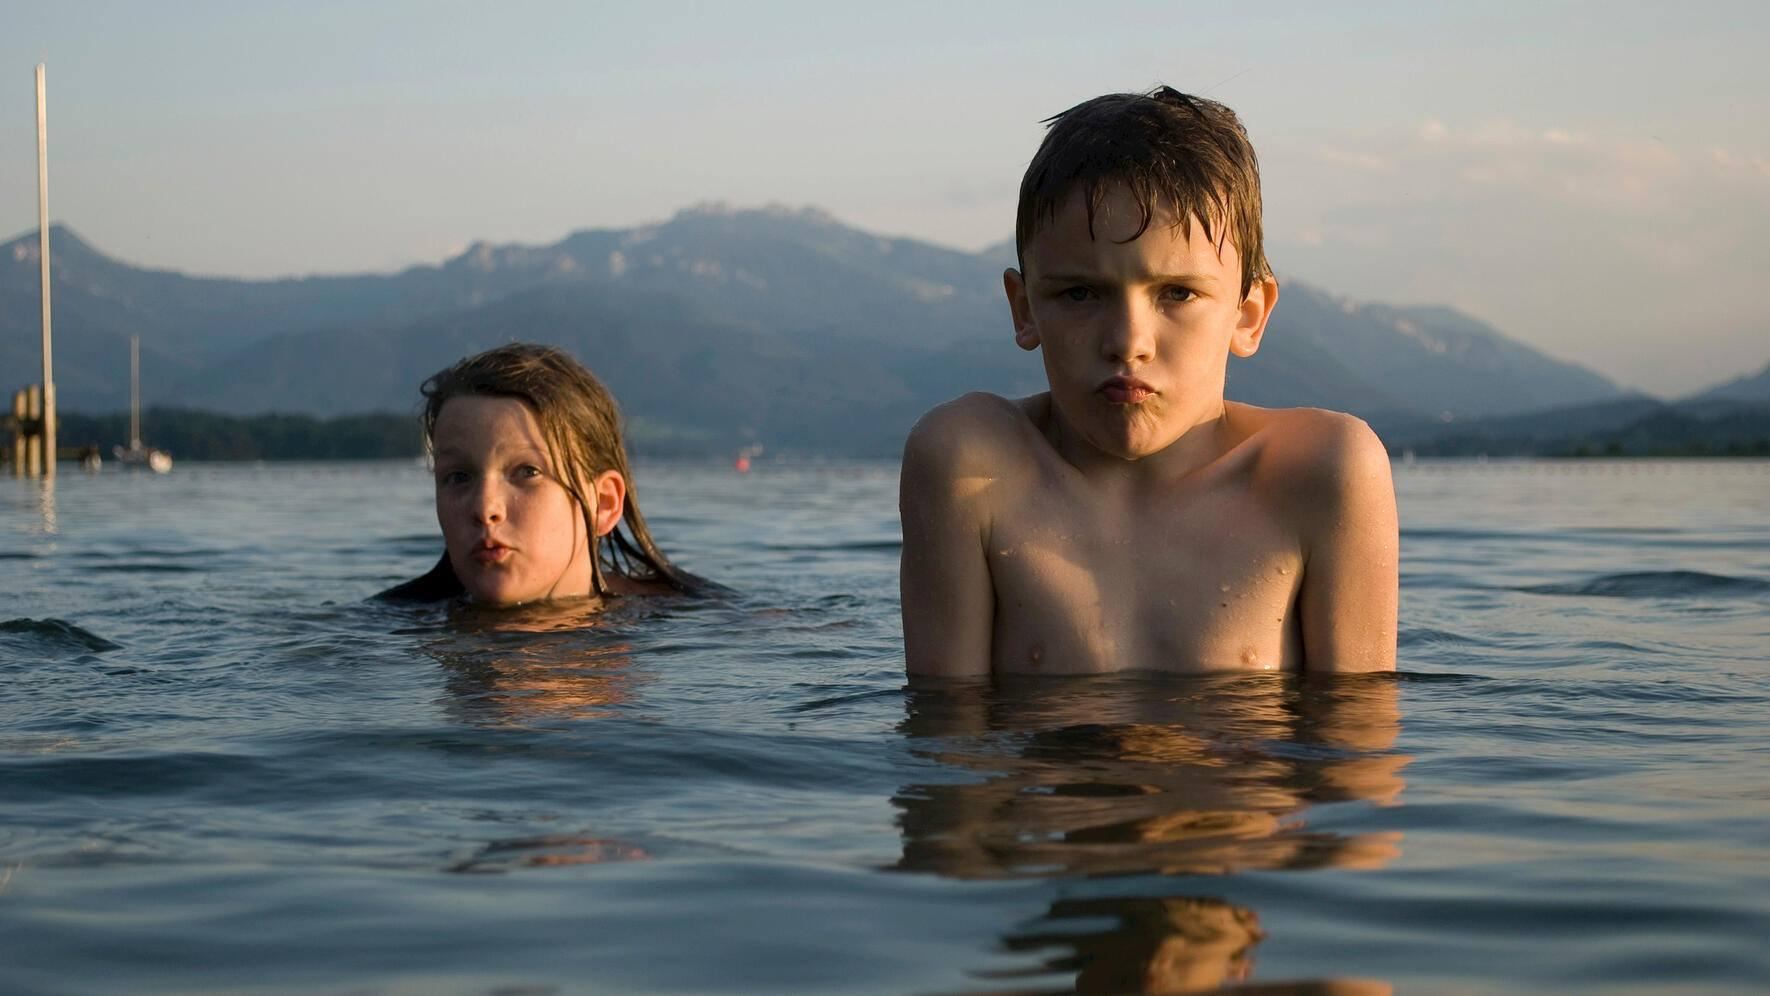 Children swimming in Lake Chiemsee, Bavaria, Germany, Europe